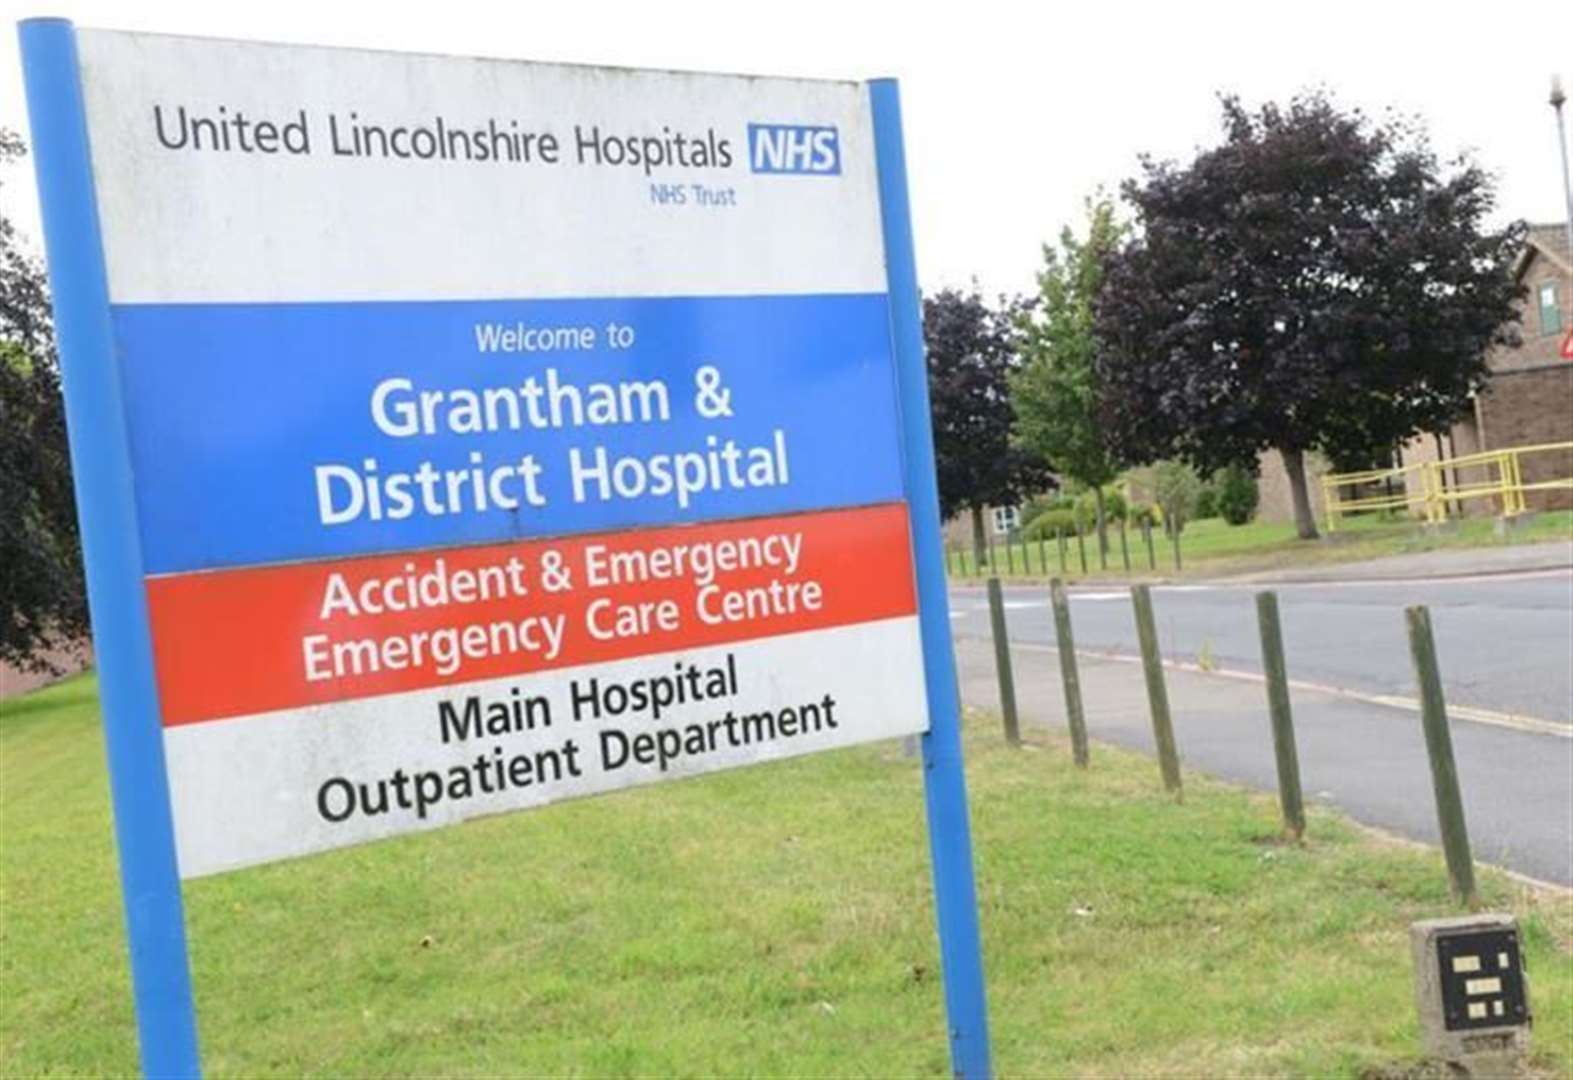 Let's have a 'healthy conversation' about Grantham Hospital